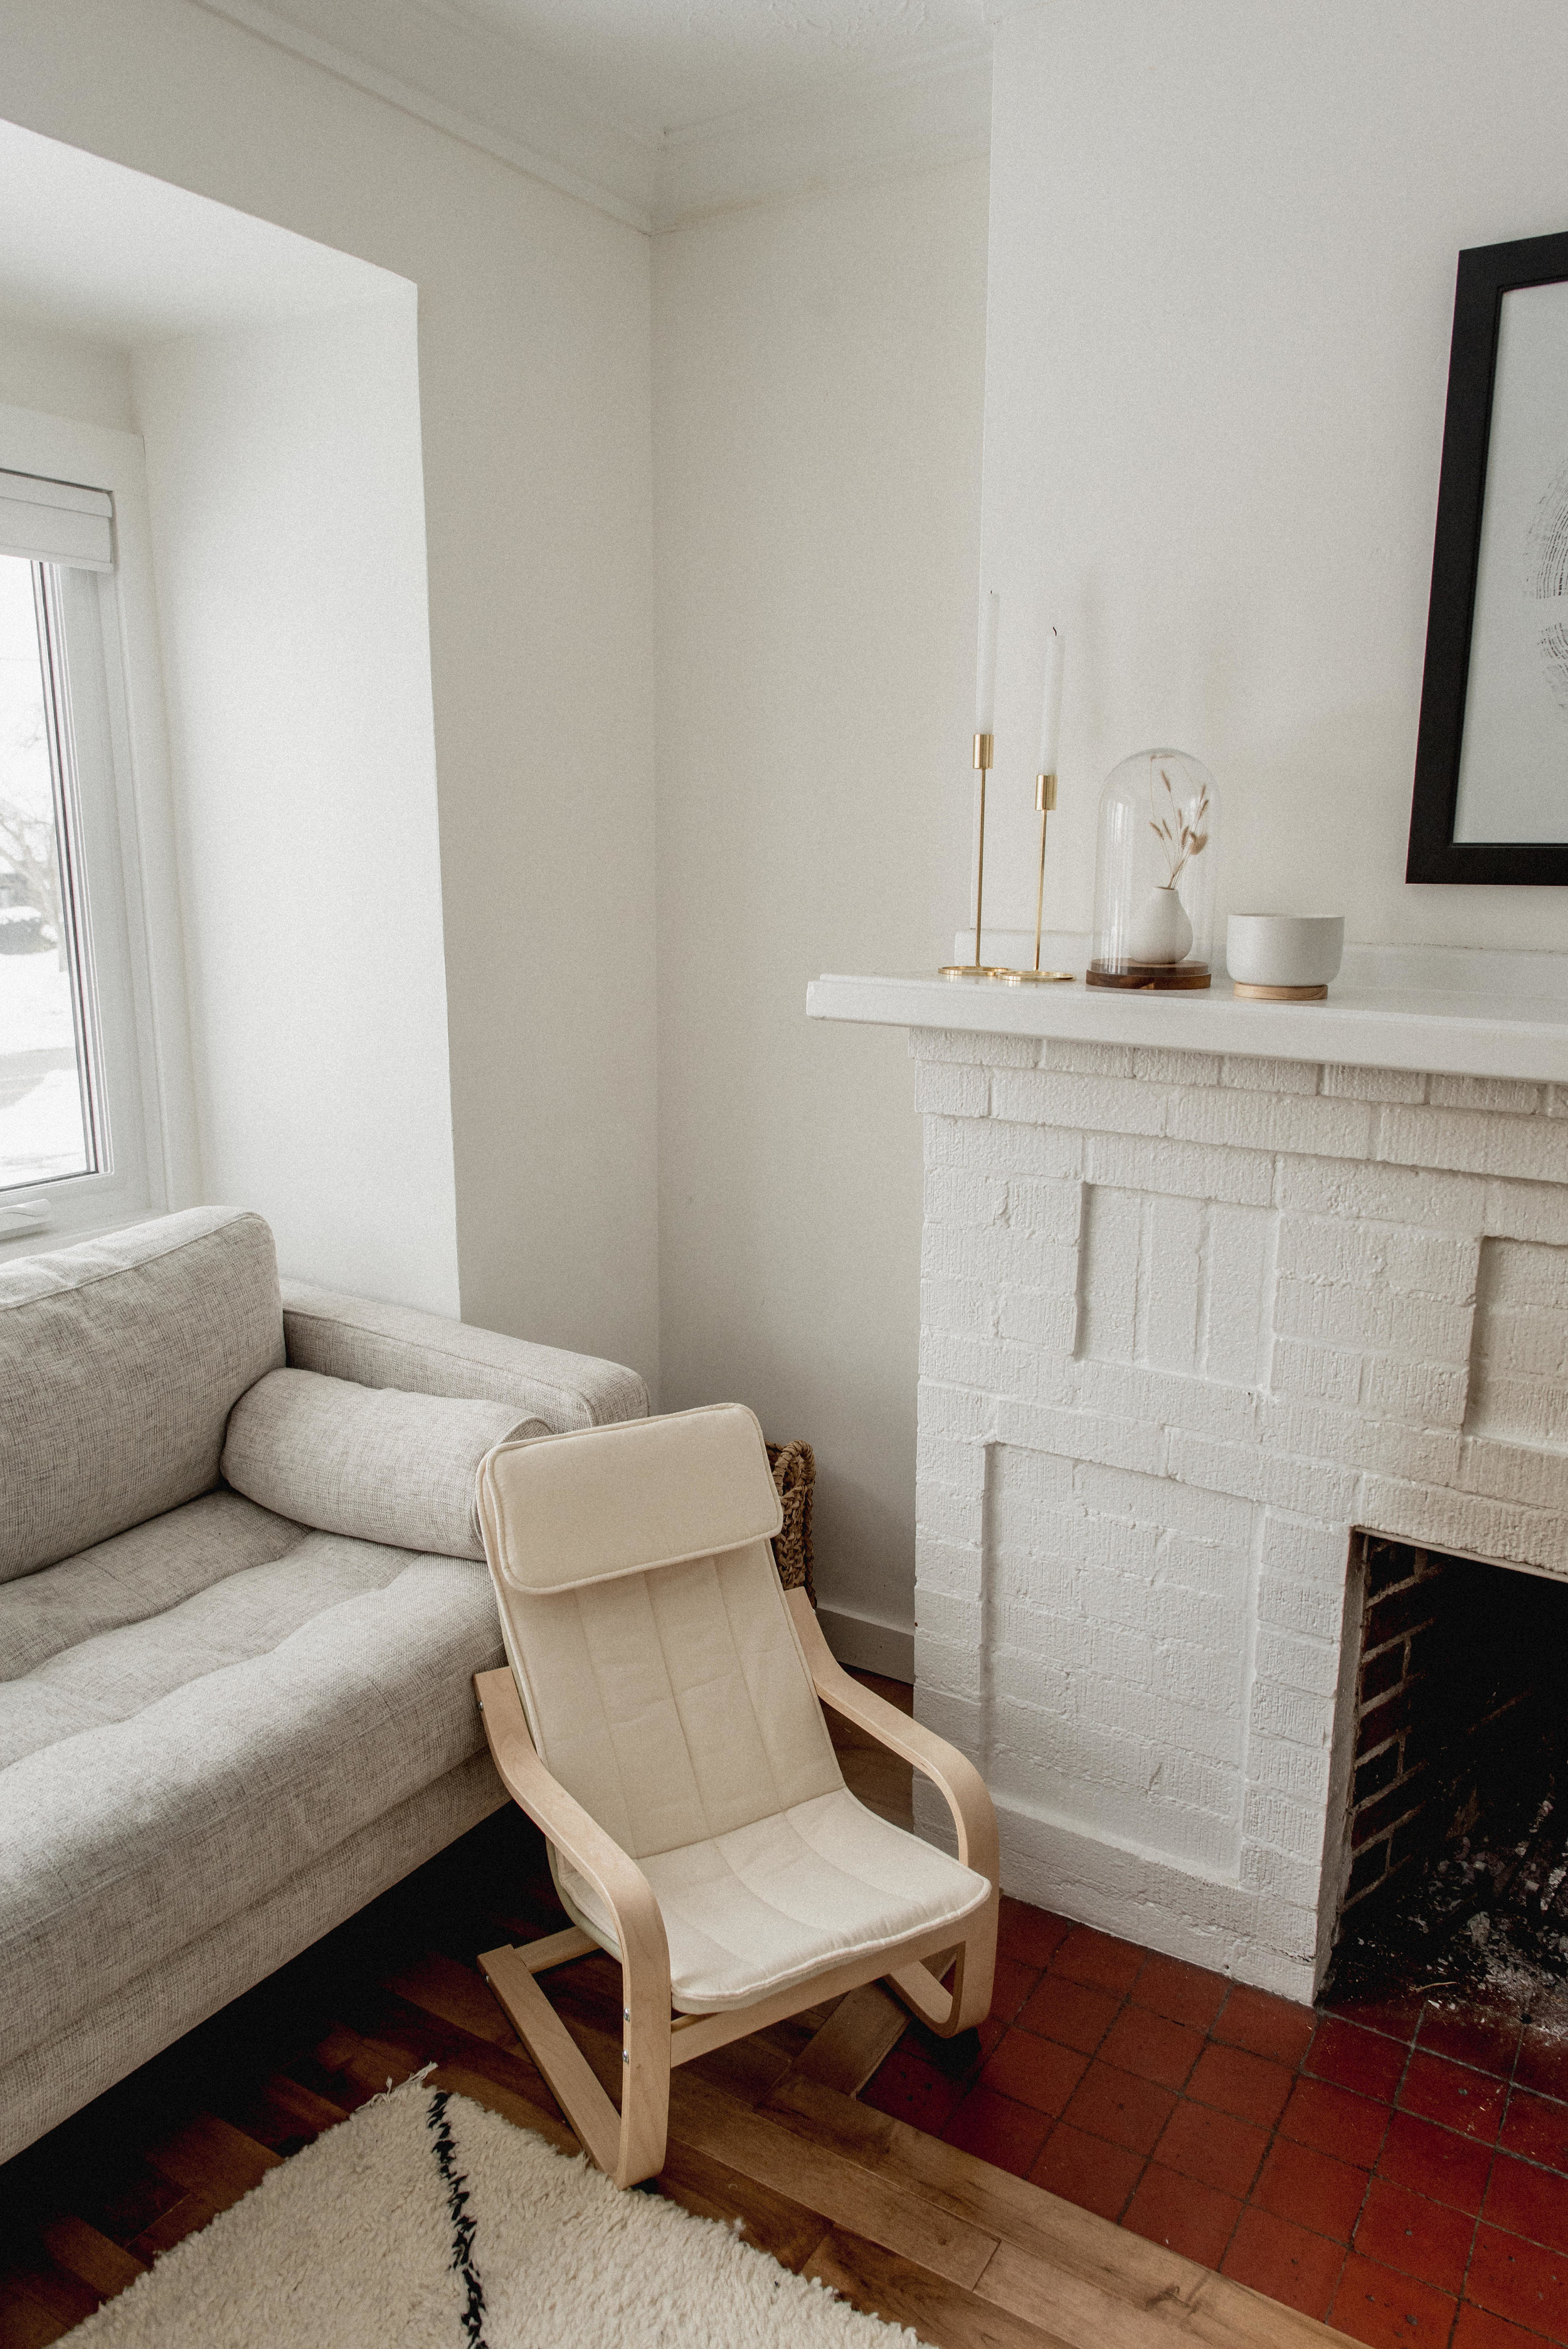 Mini poang chair for child in minimalist living room